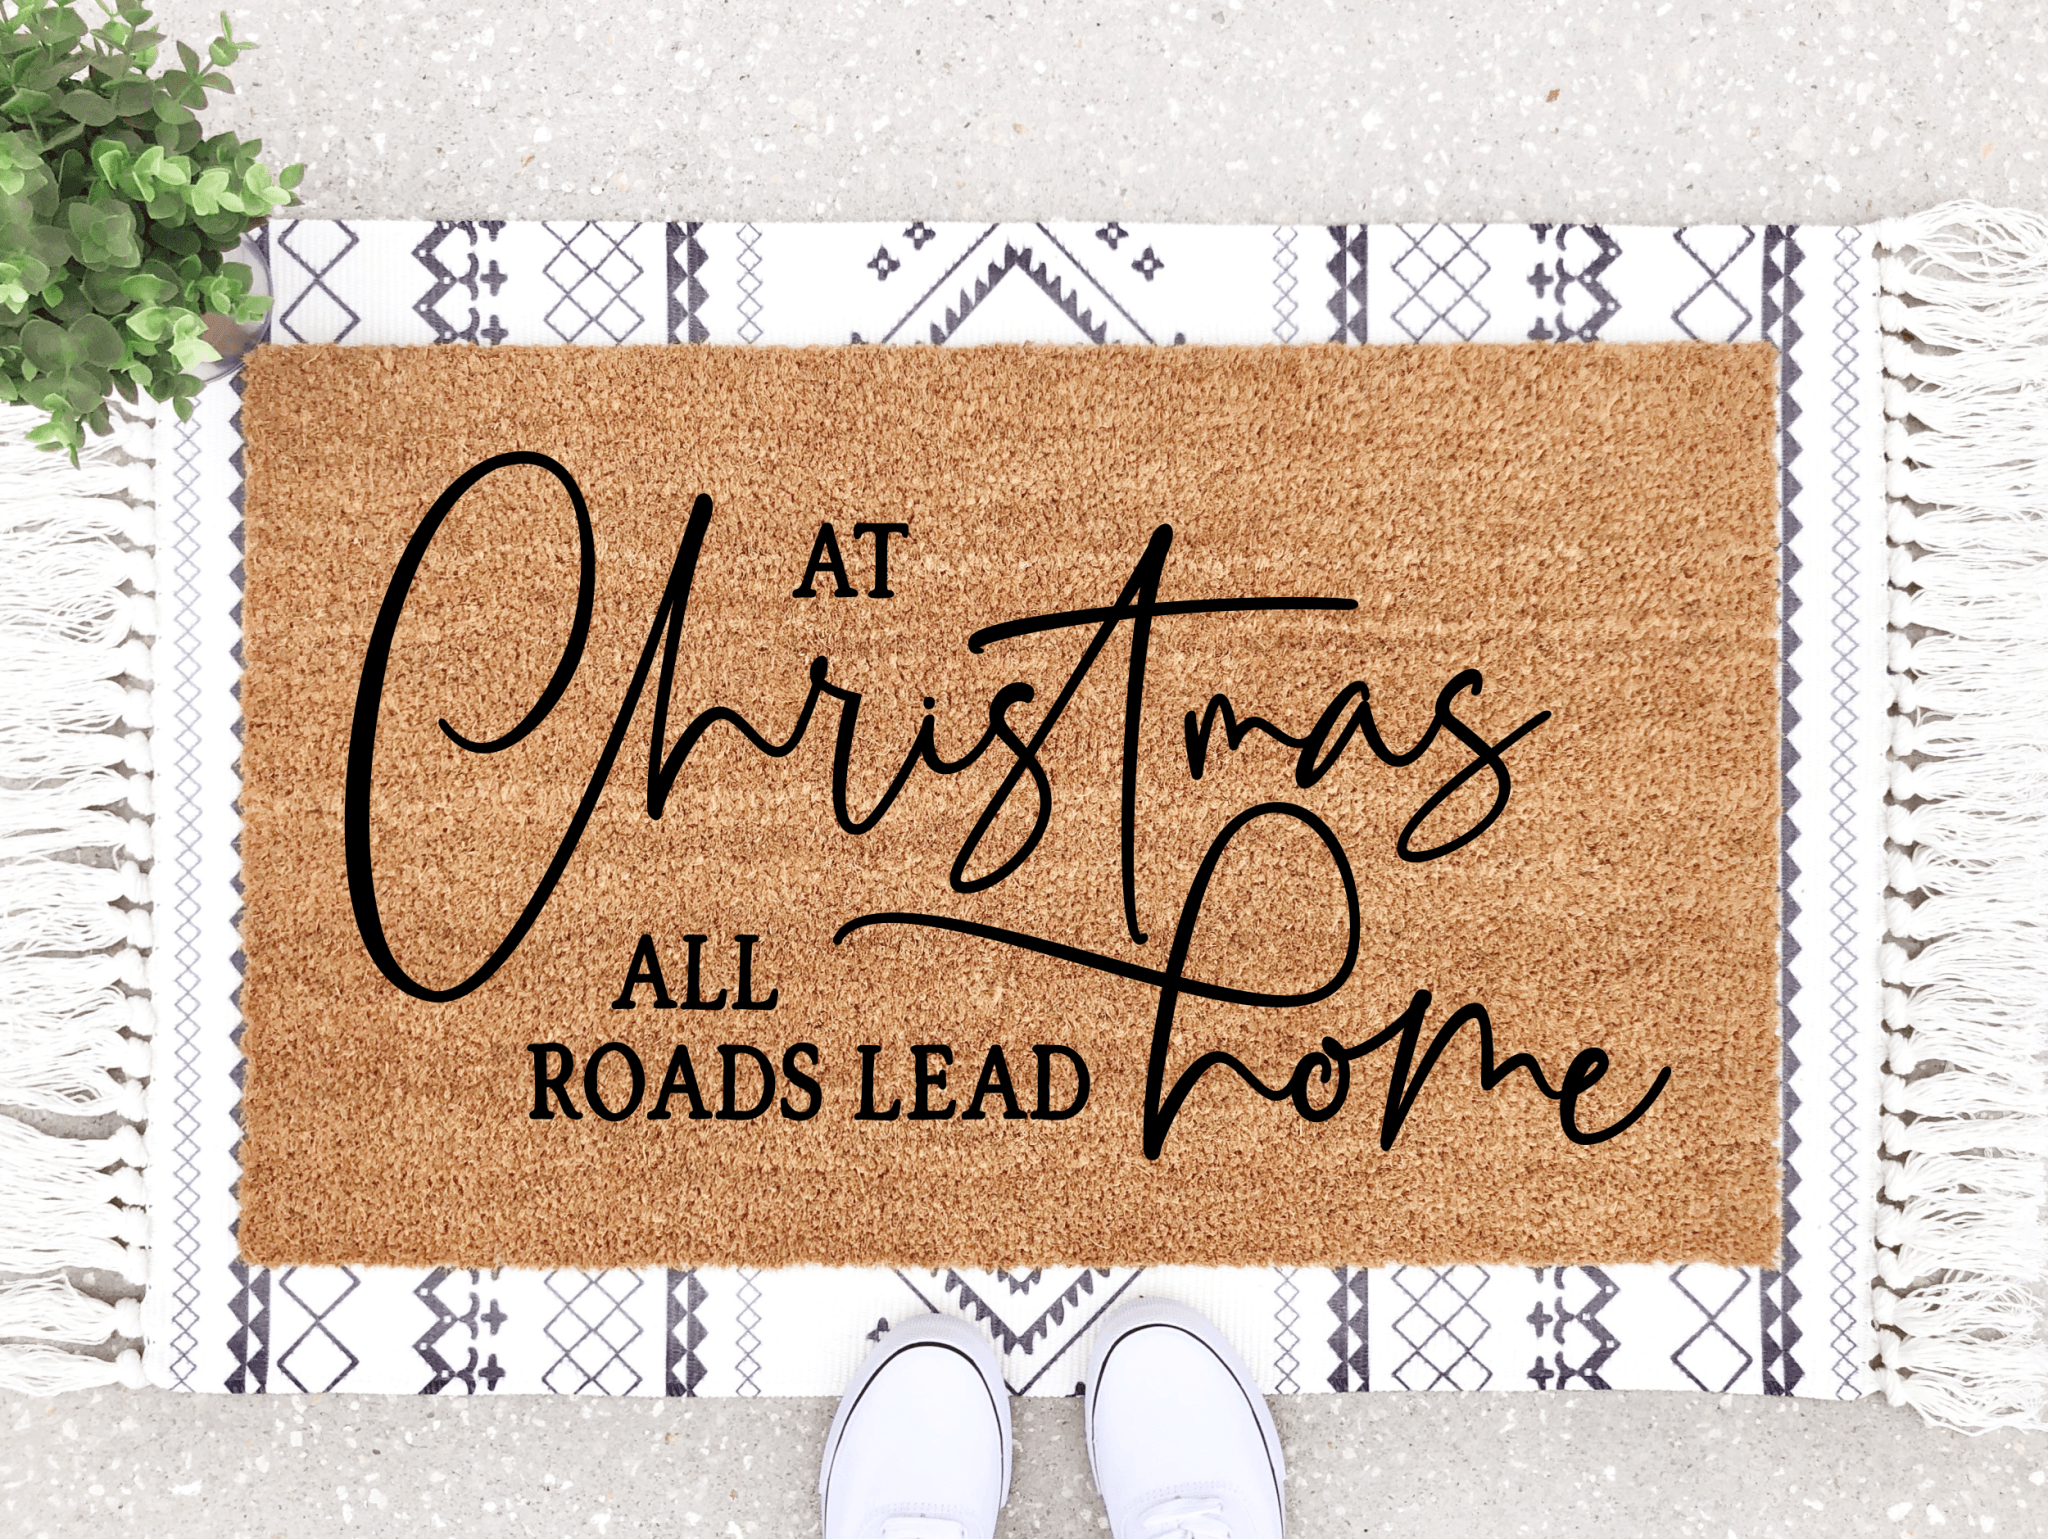 All Roads Lead Home Doormat